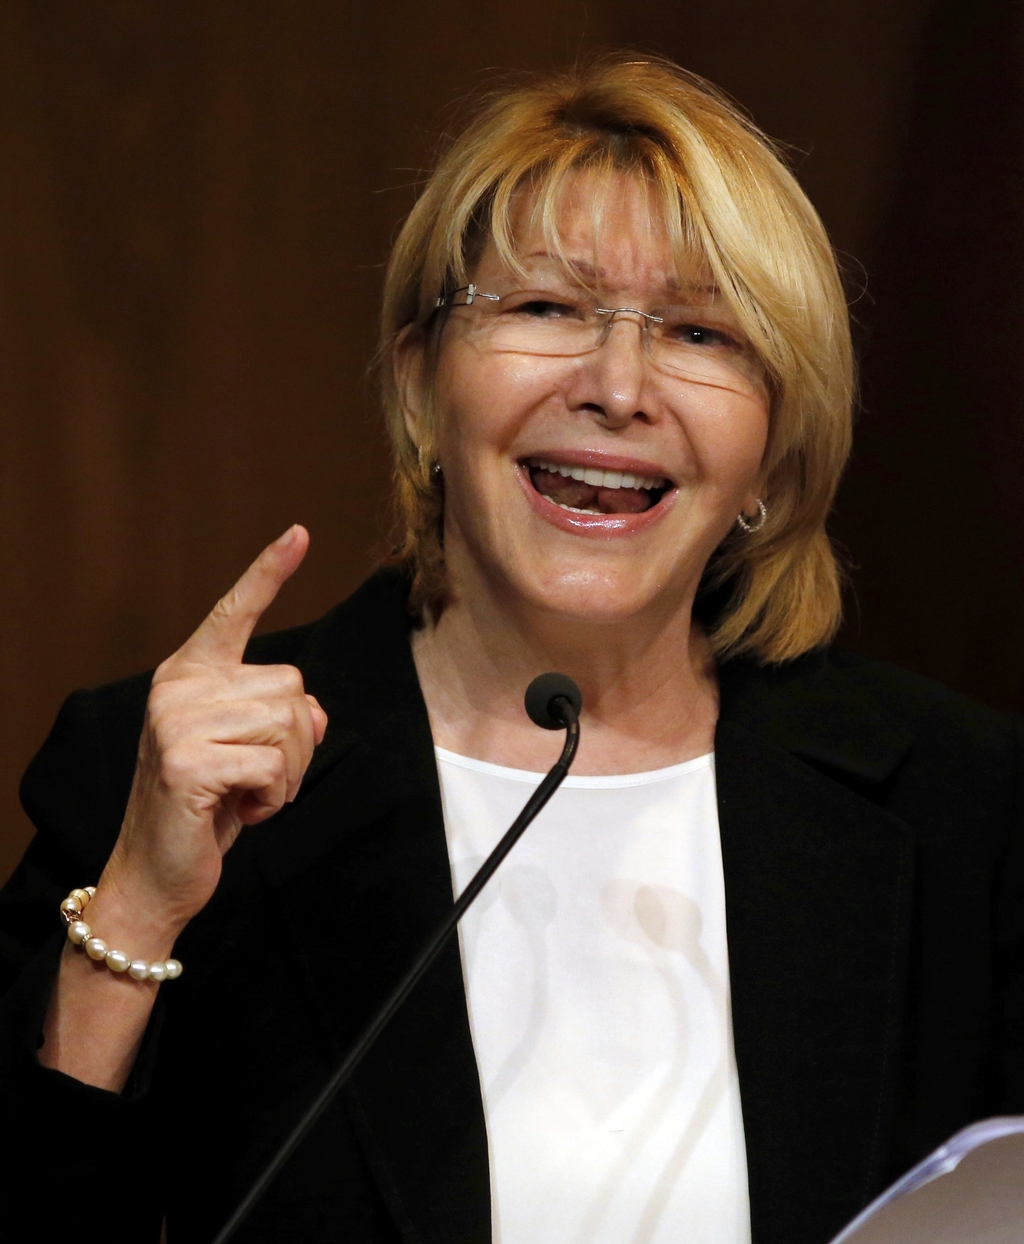 Venezuela's General Prosecutor Luisa Ortega Diaz speaks during a news conference at her office in Caracas, Venezuela, Monday, July 31, 2017.  Electora...